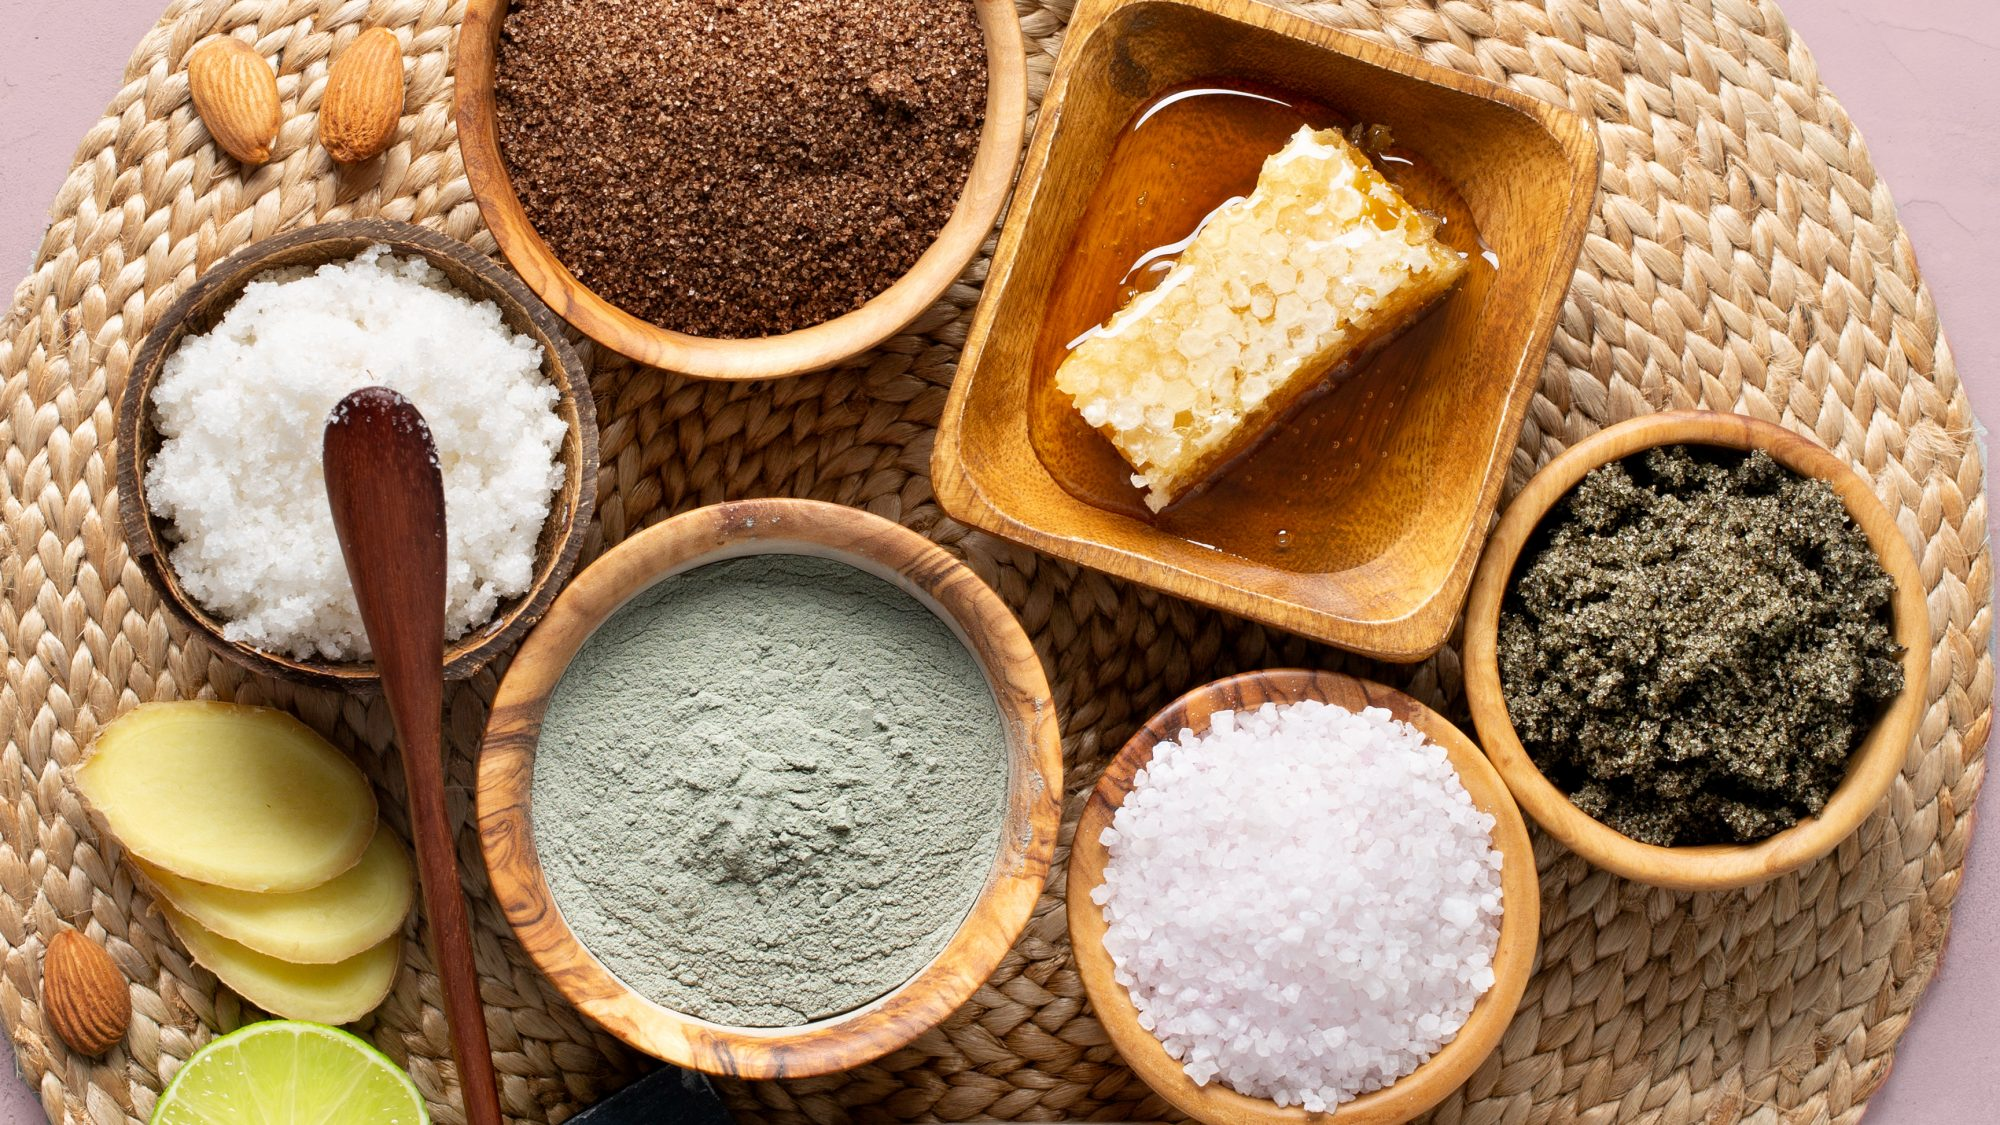 Natural Remedies for Skin: natural skin care and remedies